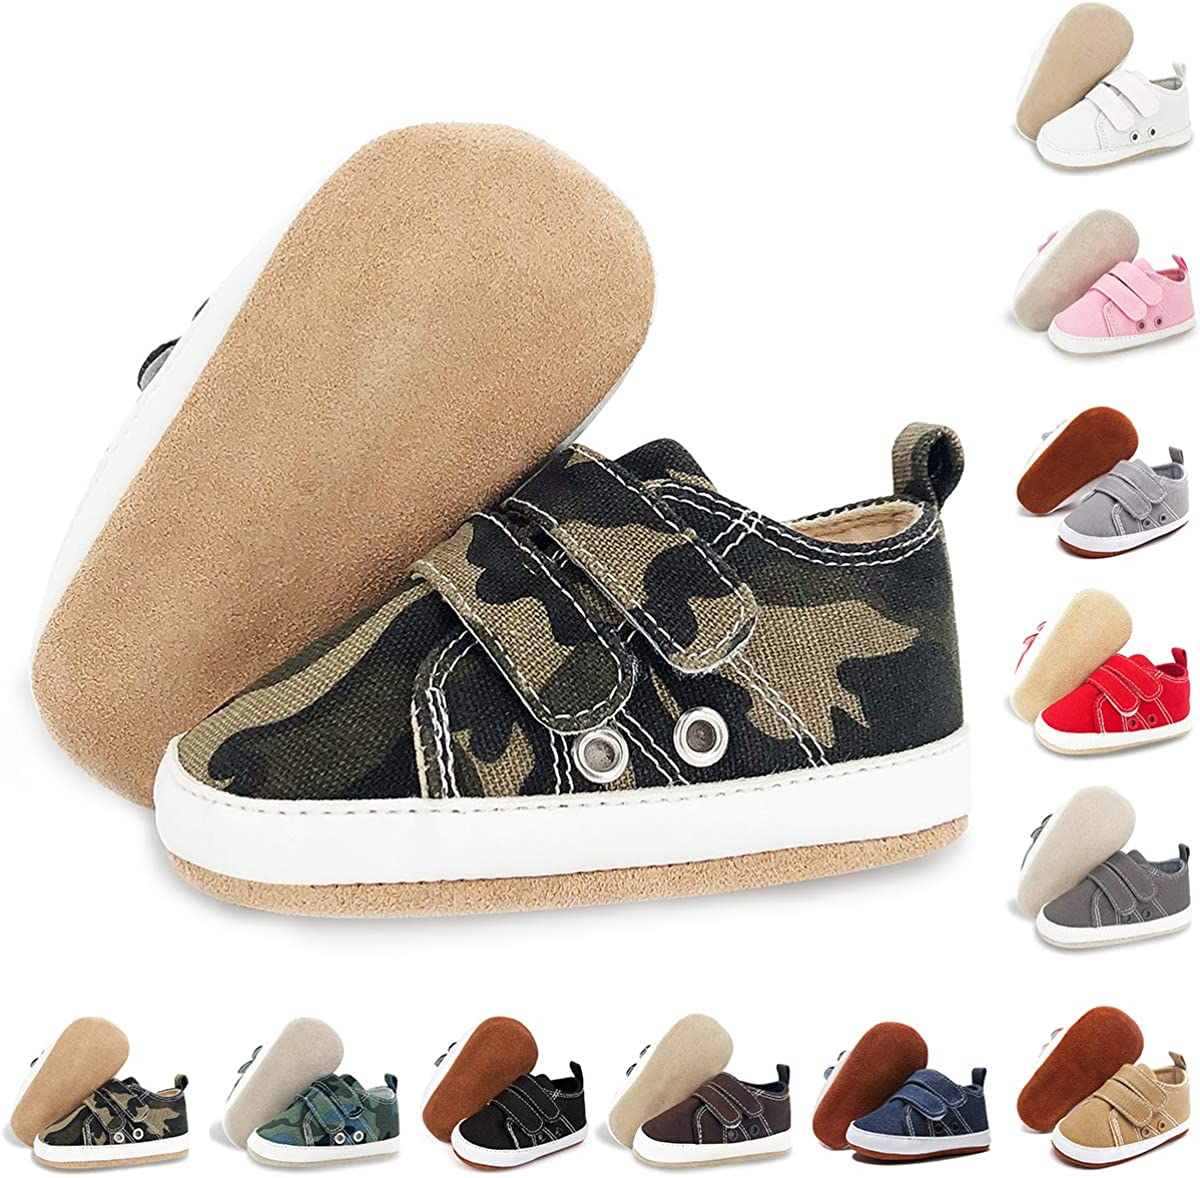 BENHERO Baby Boys Girls Shoes Leathe Infant Al sold out. Sneakers Mail order cheap Canvas 100%